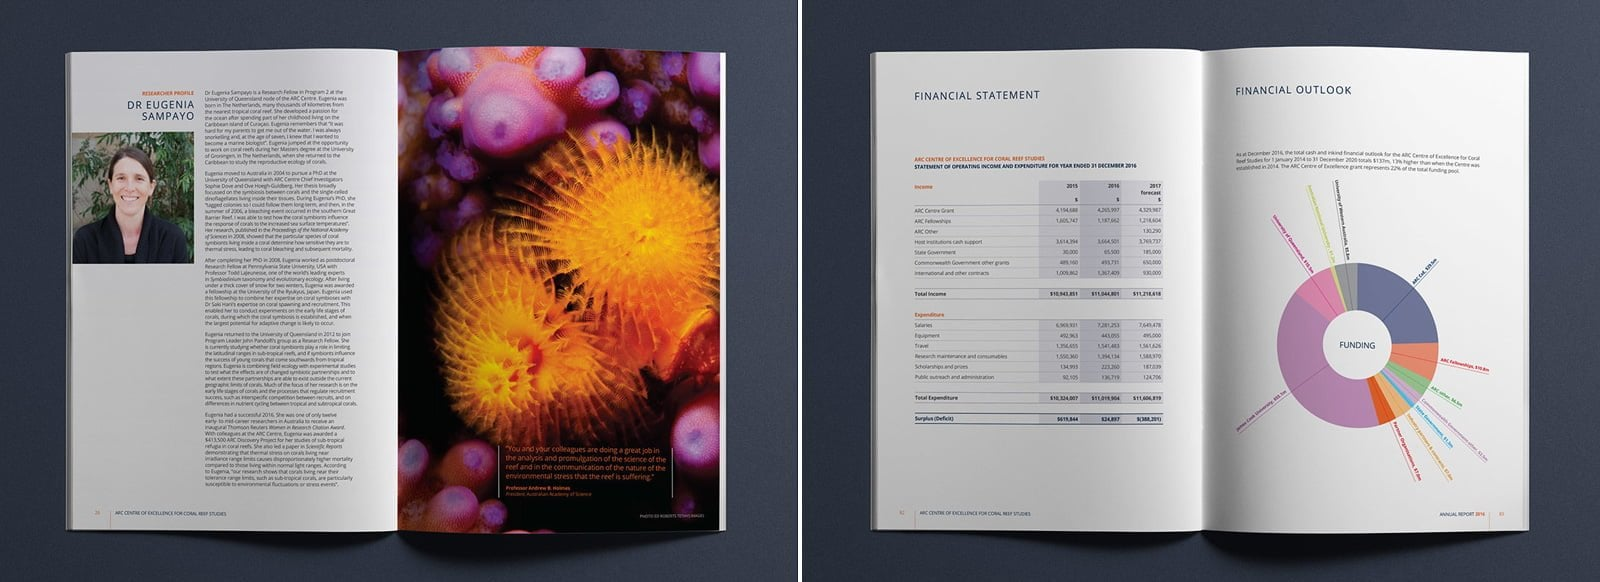 Annual Report by Zephyrmedia